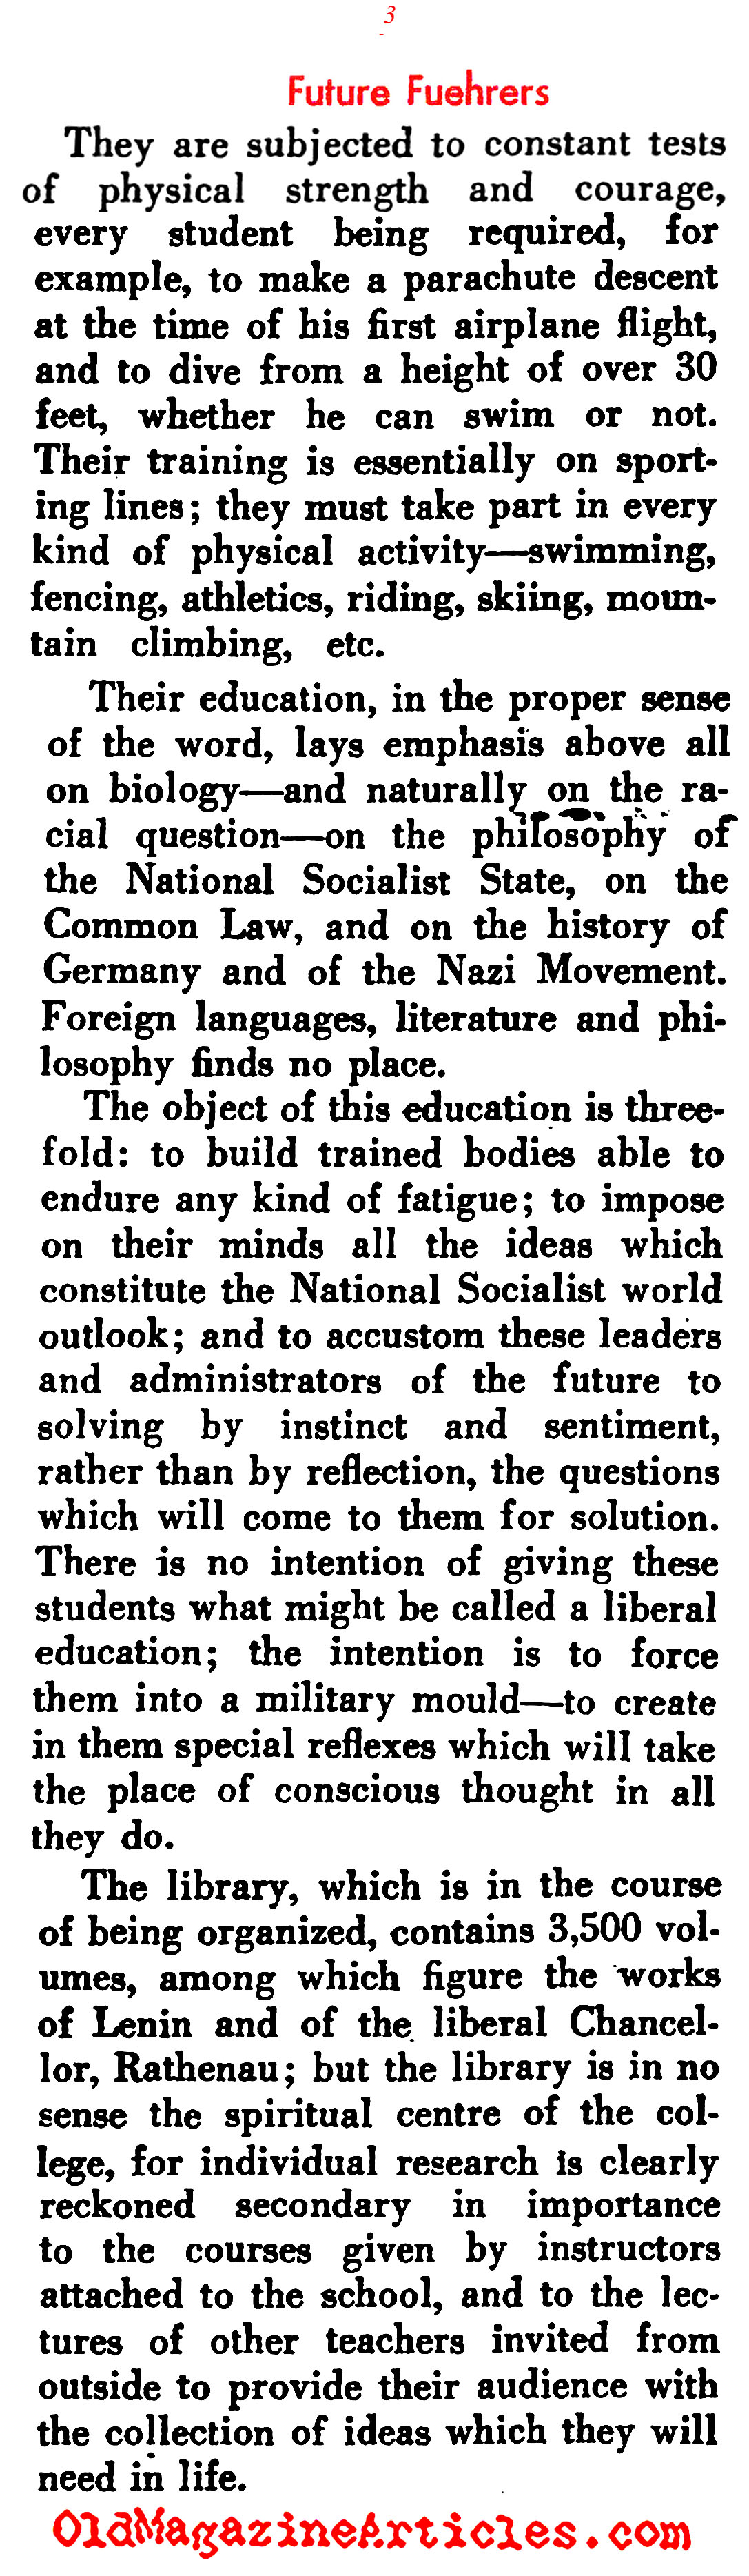 The Adolf Hitler Schools (Current History  Magazine, 1939)